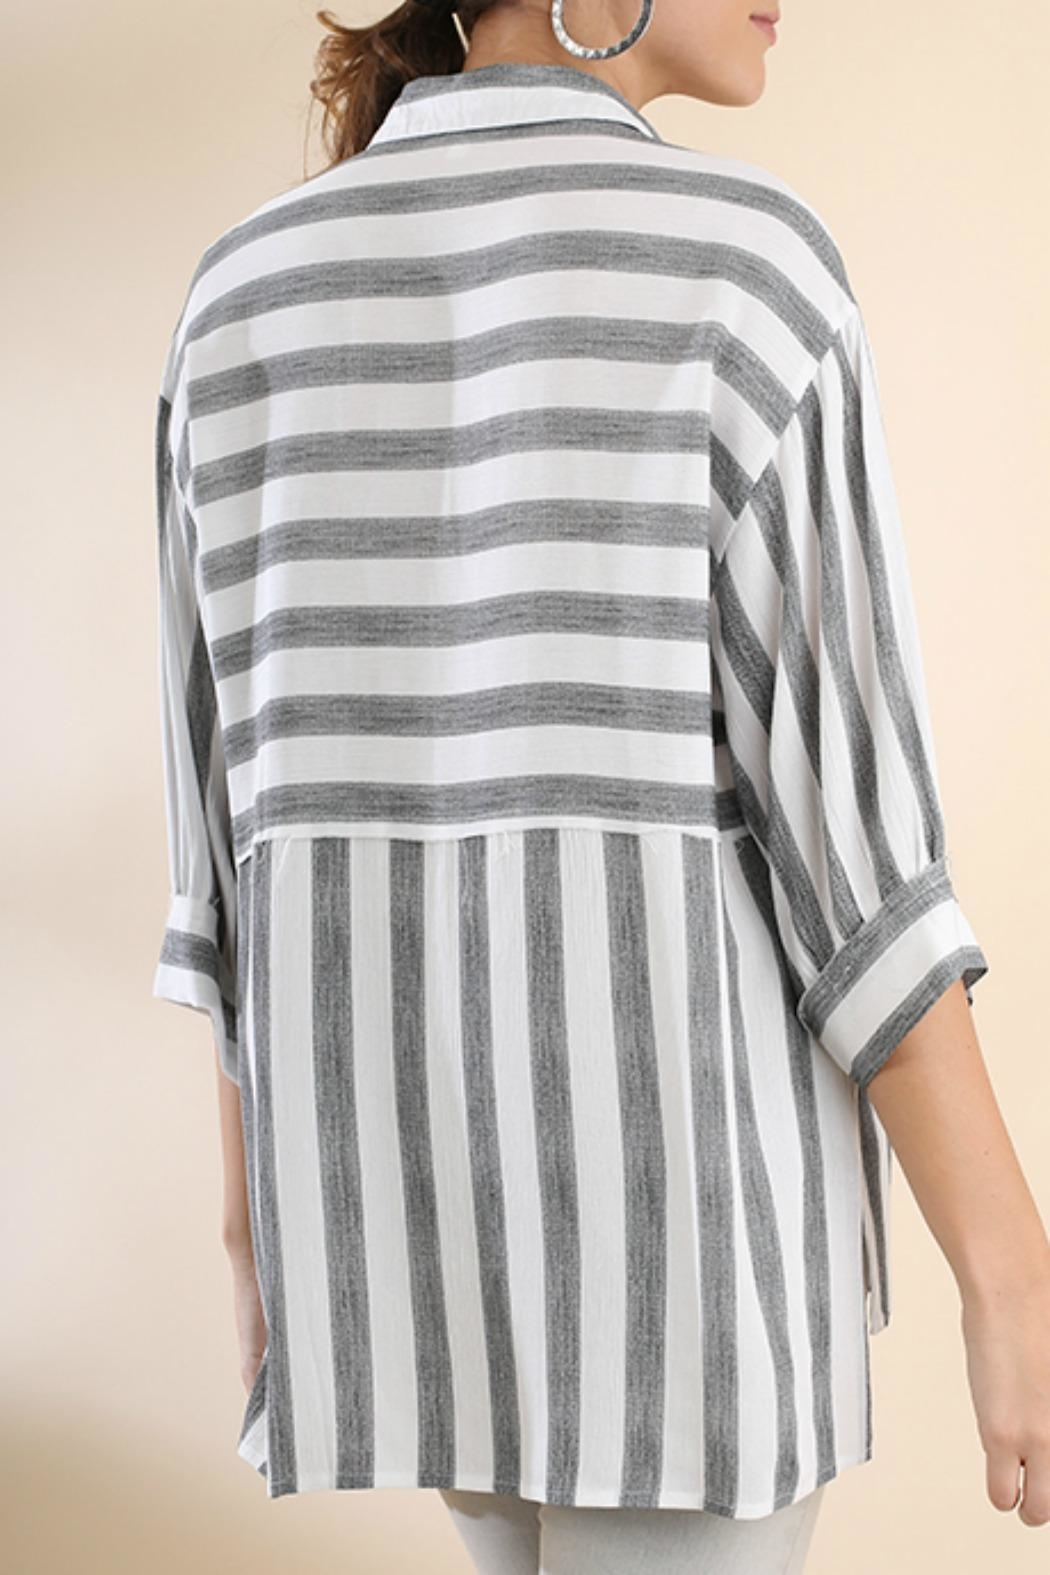 Umgee USA Stripe Button-Up Tunic - Back Cropped Image